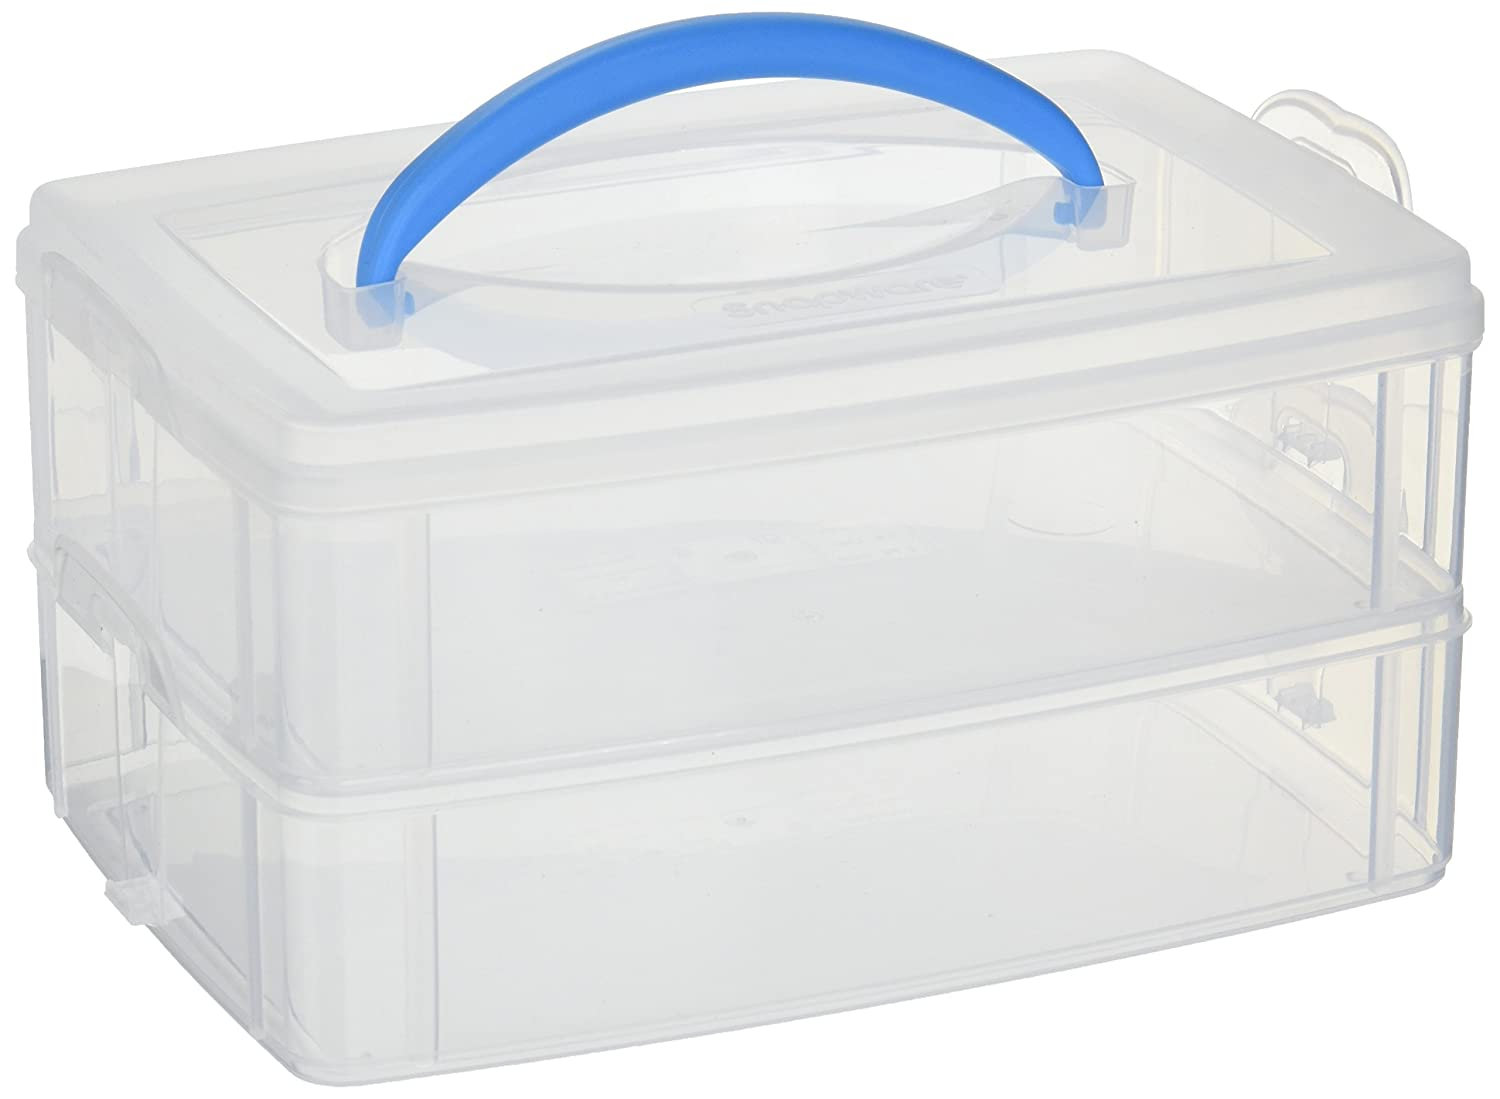 Snapware Snap 'N Stack 6-Inch By 9-Inch Storage Container, Rectangle 1098834